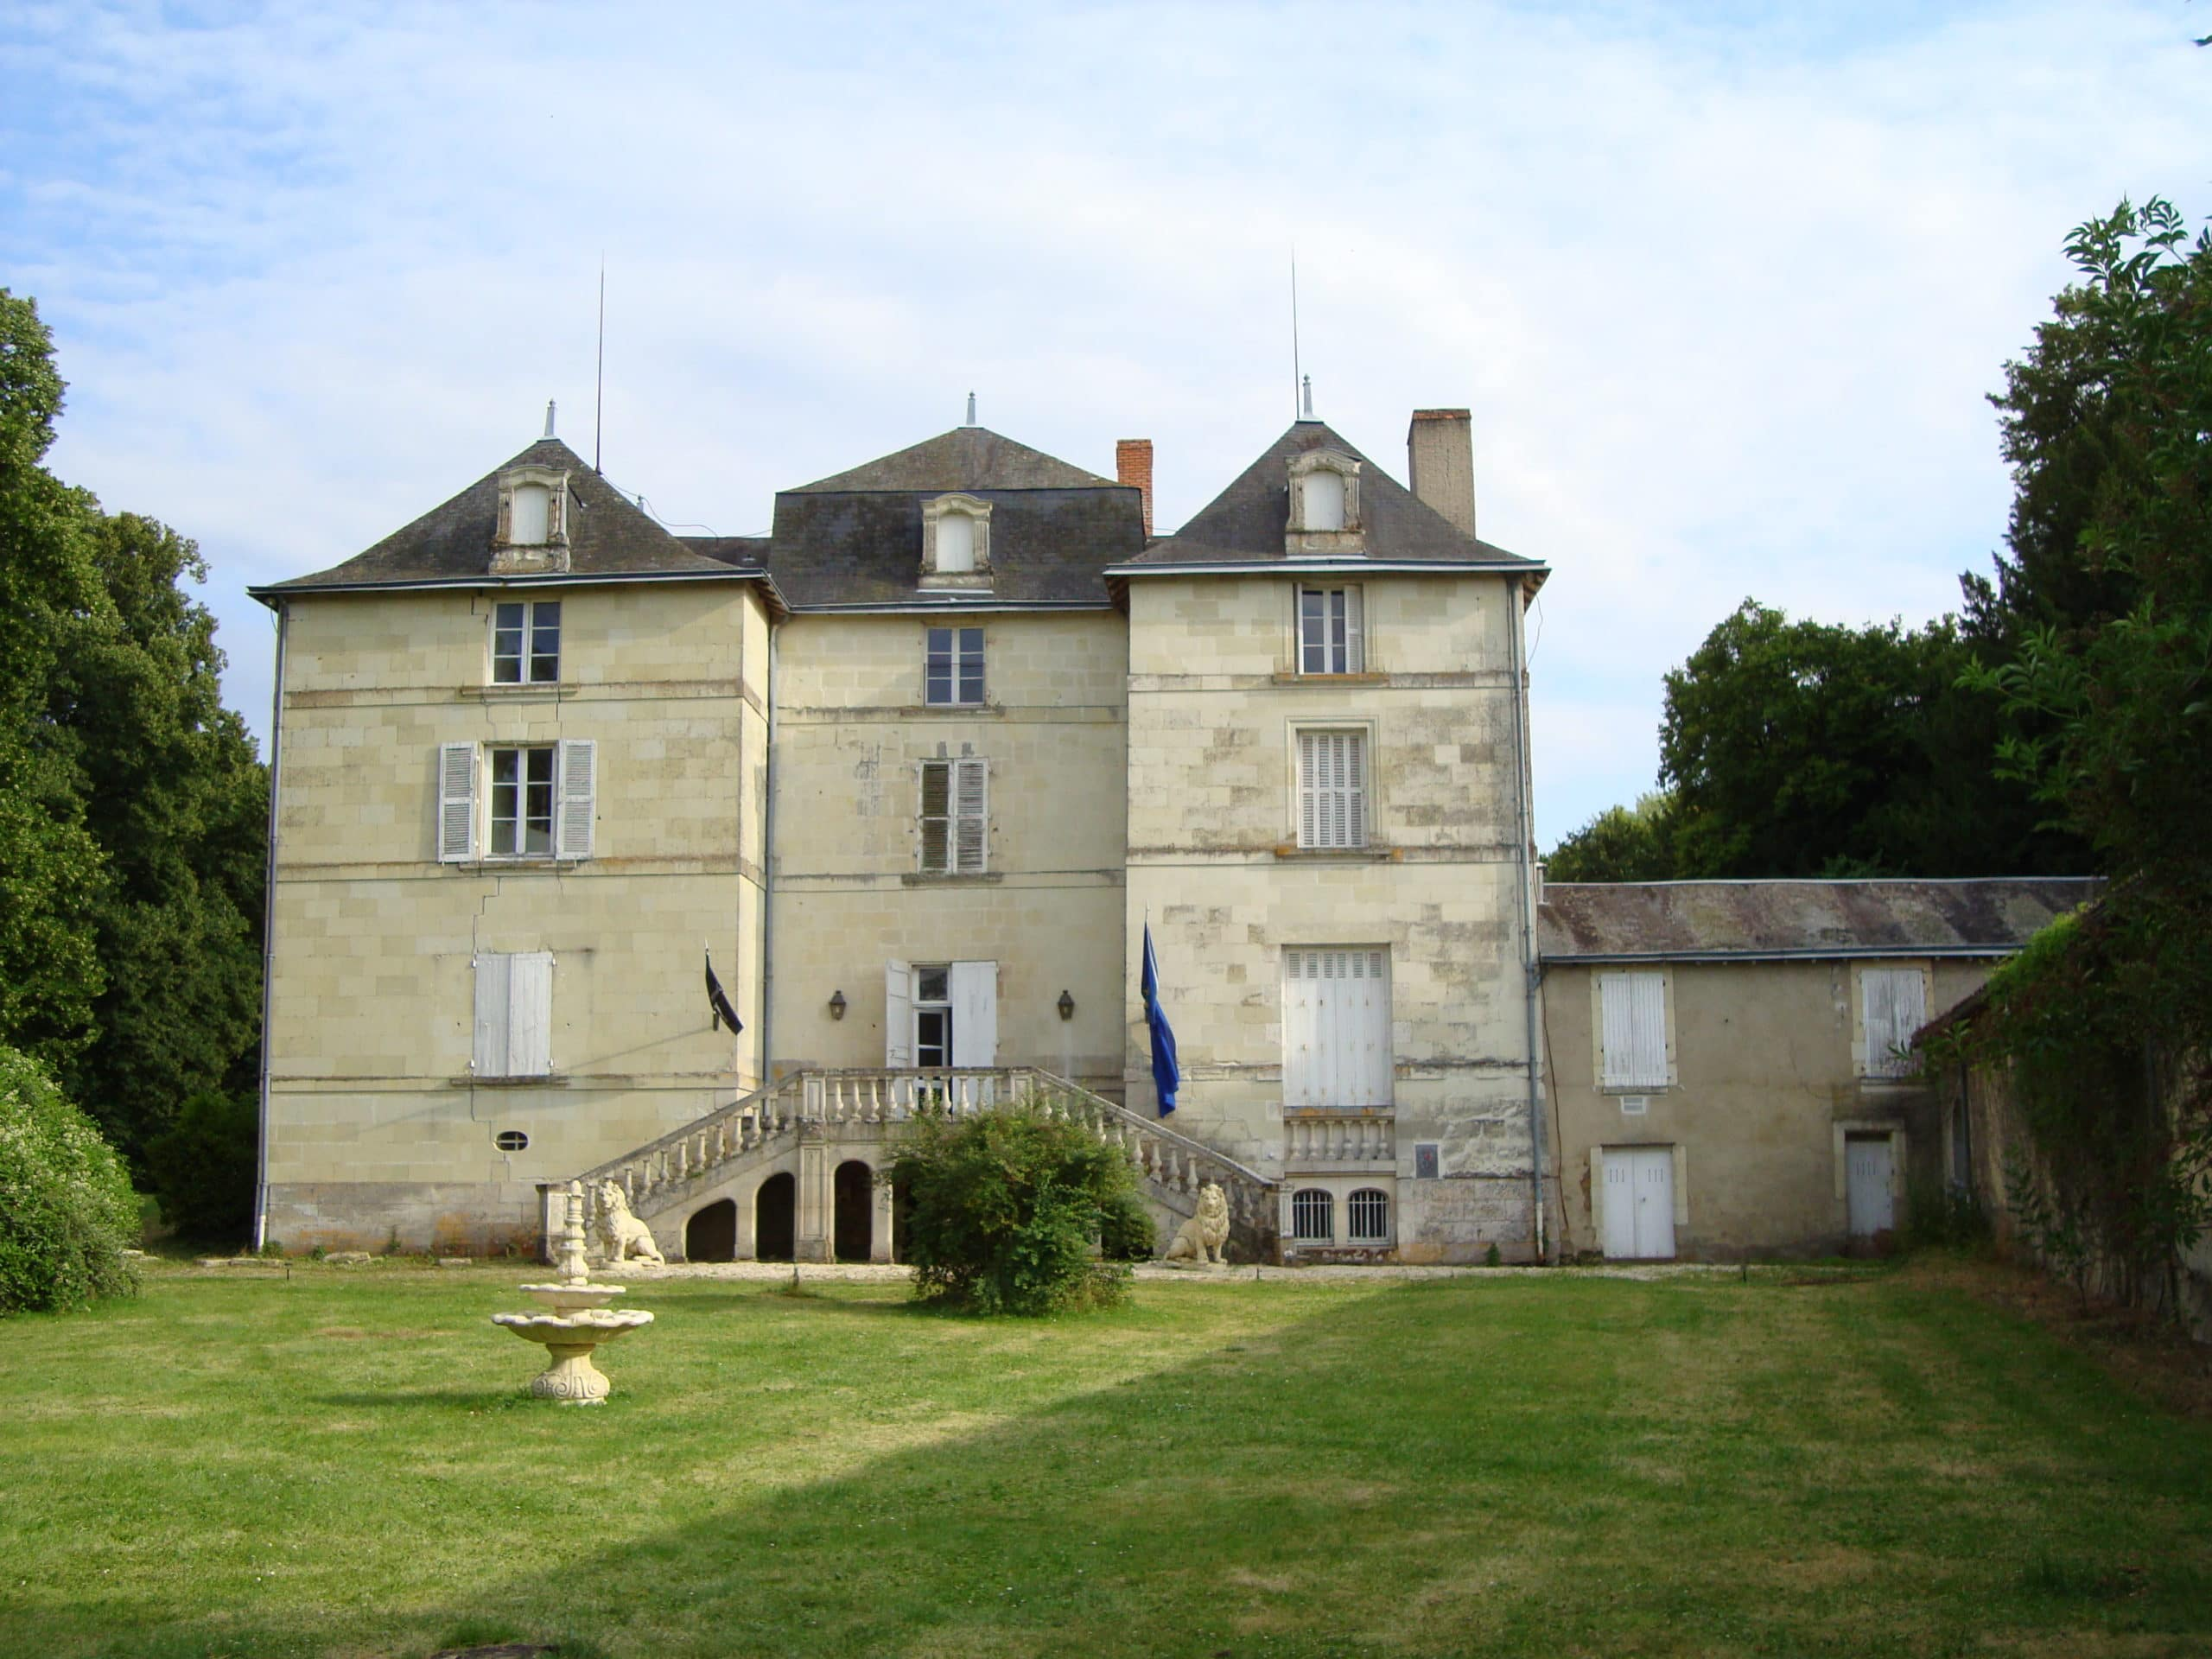 French Chateau with 12 bedrooms, 900 year foundation